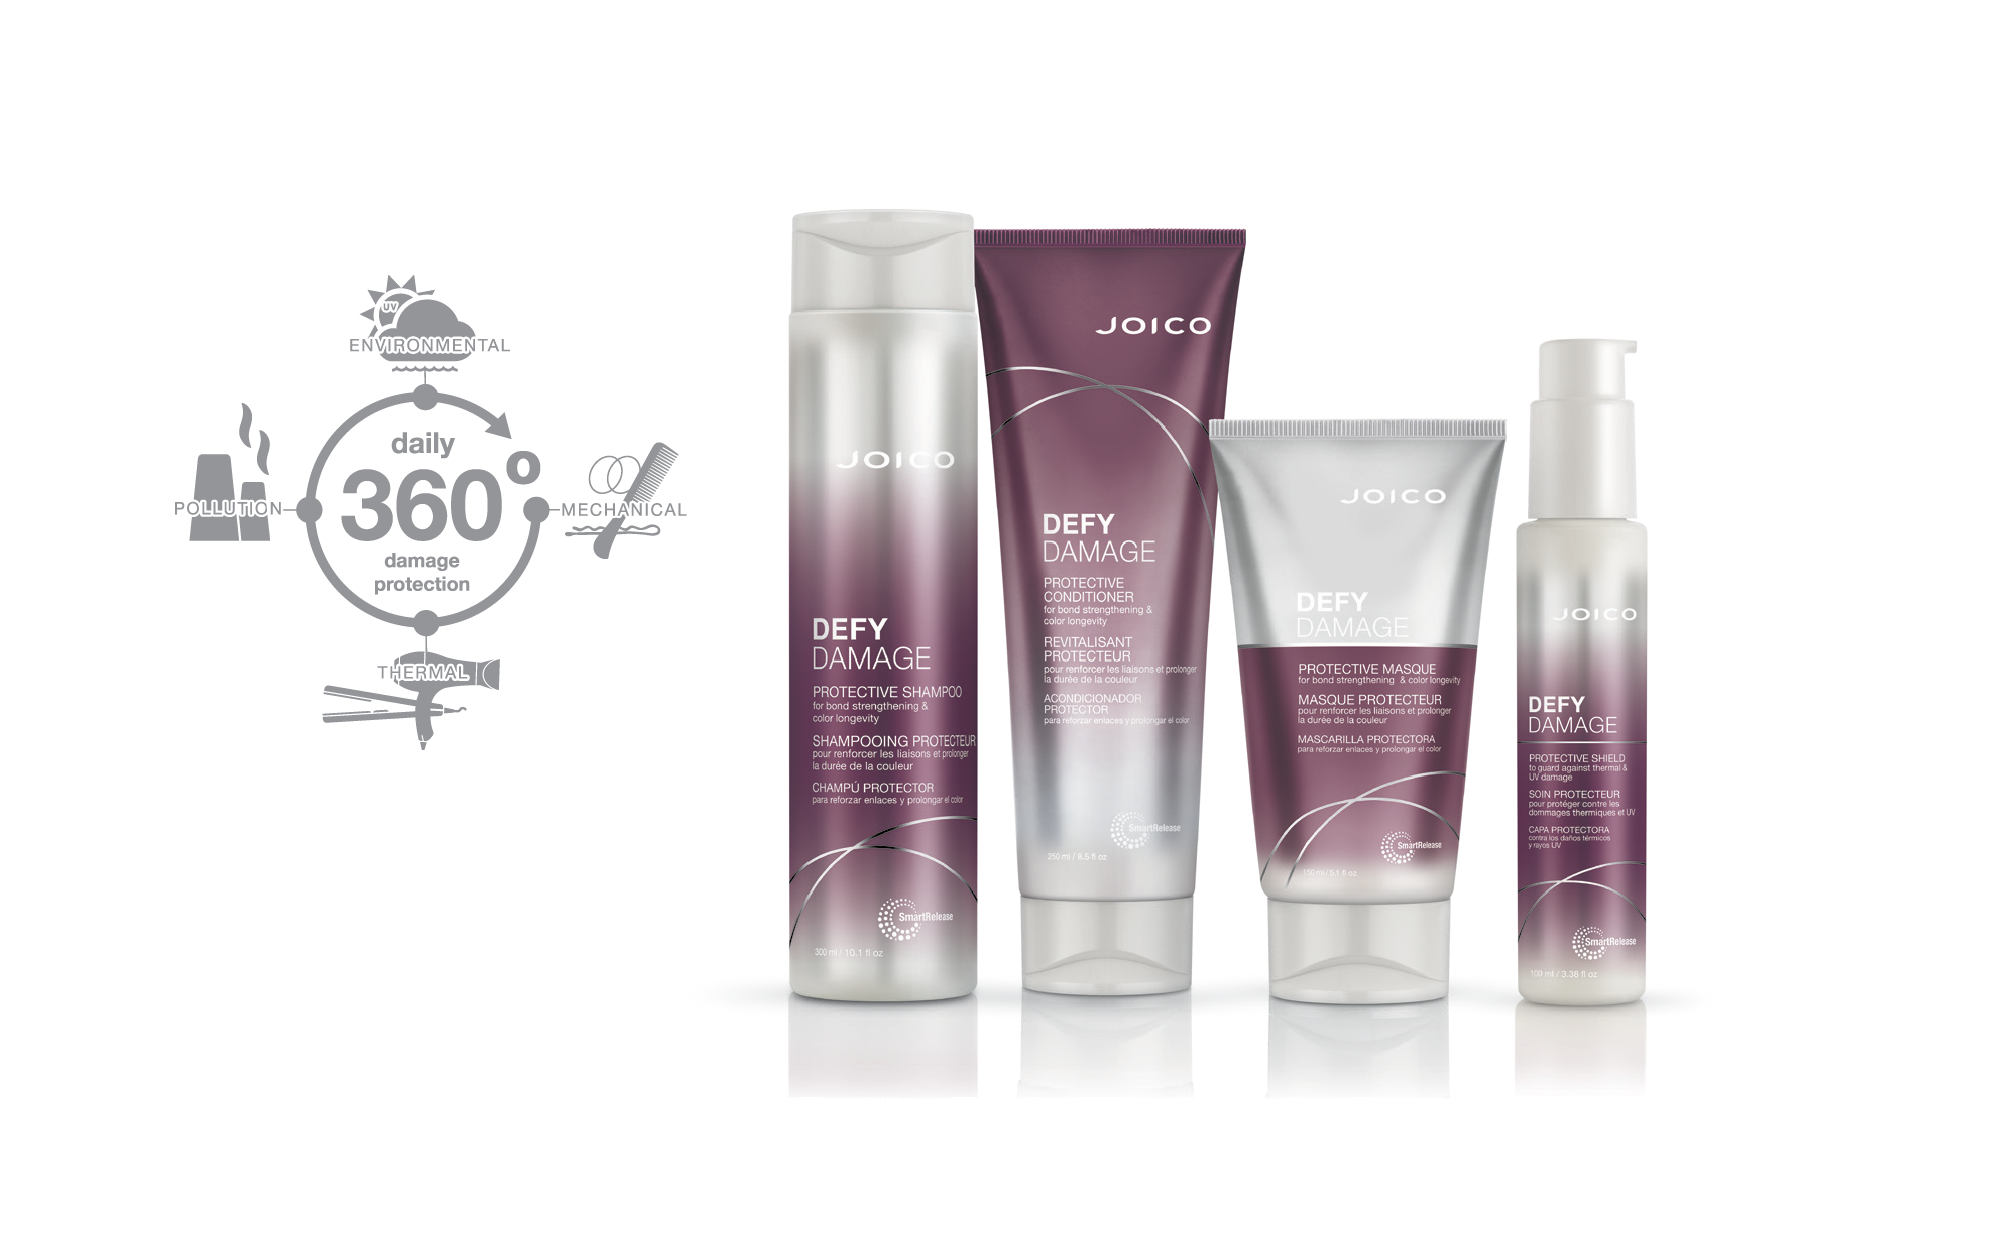 Defy Damage products